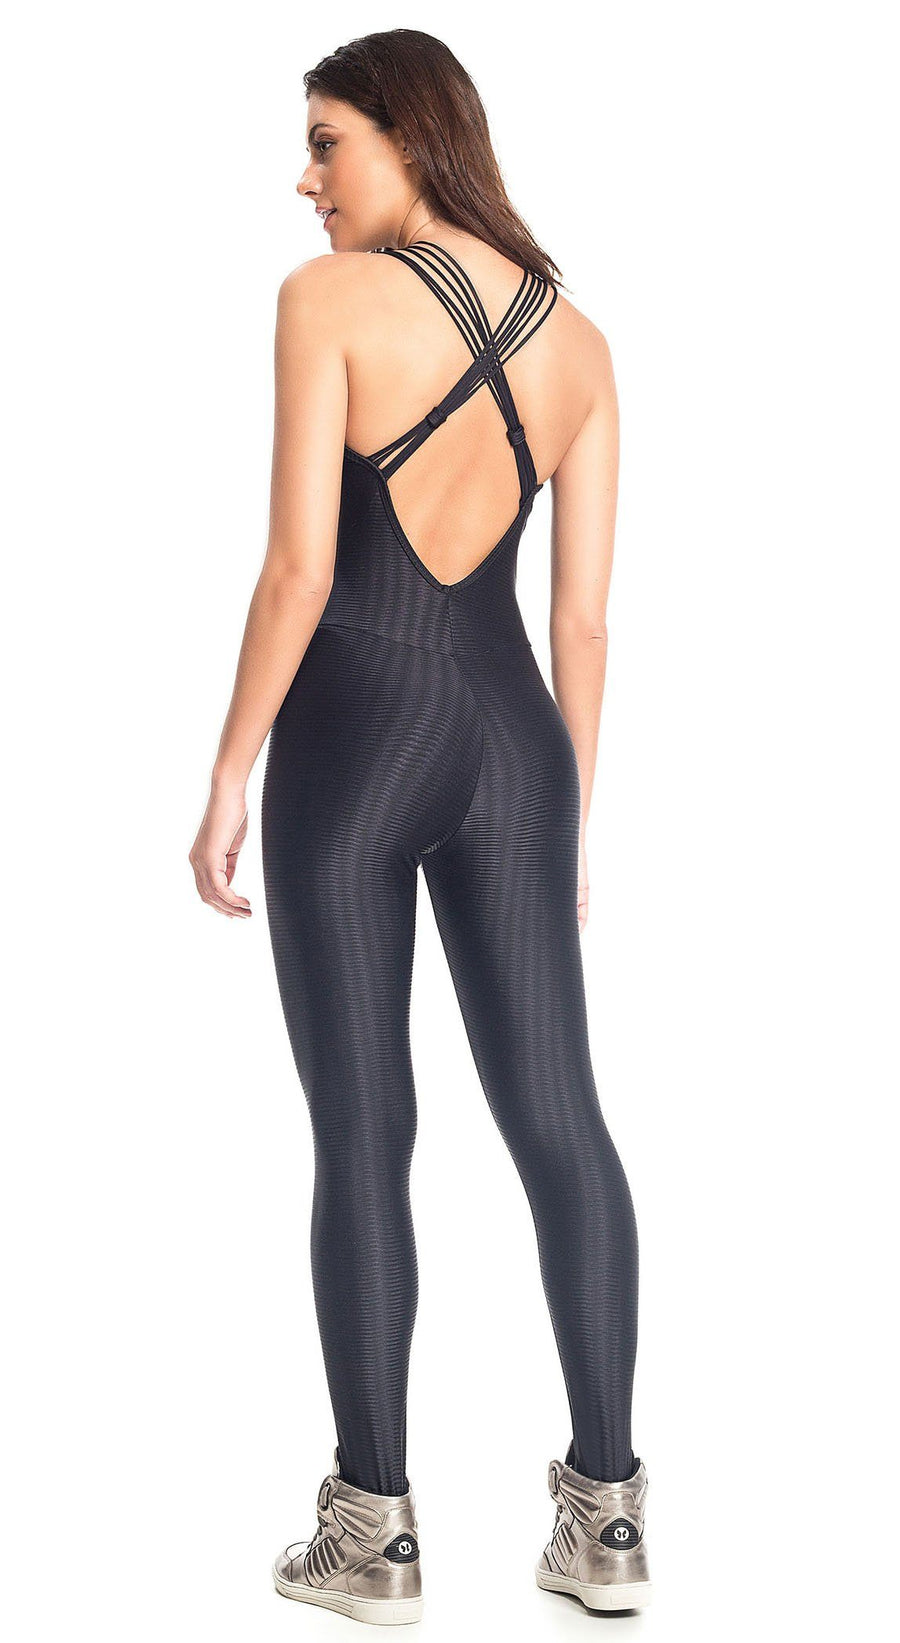 Brazilian Workout Jumpsuit - Queen Bee Black